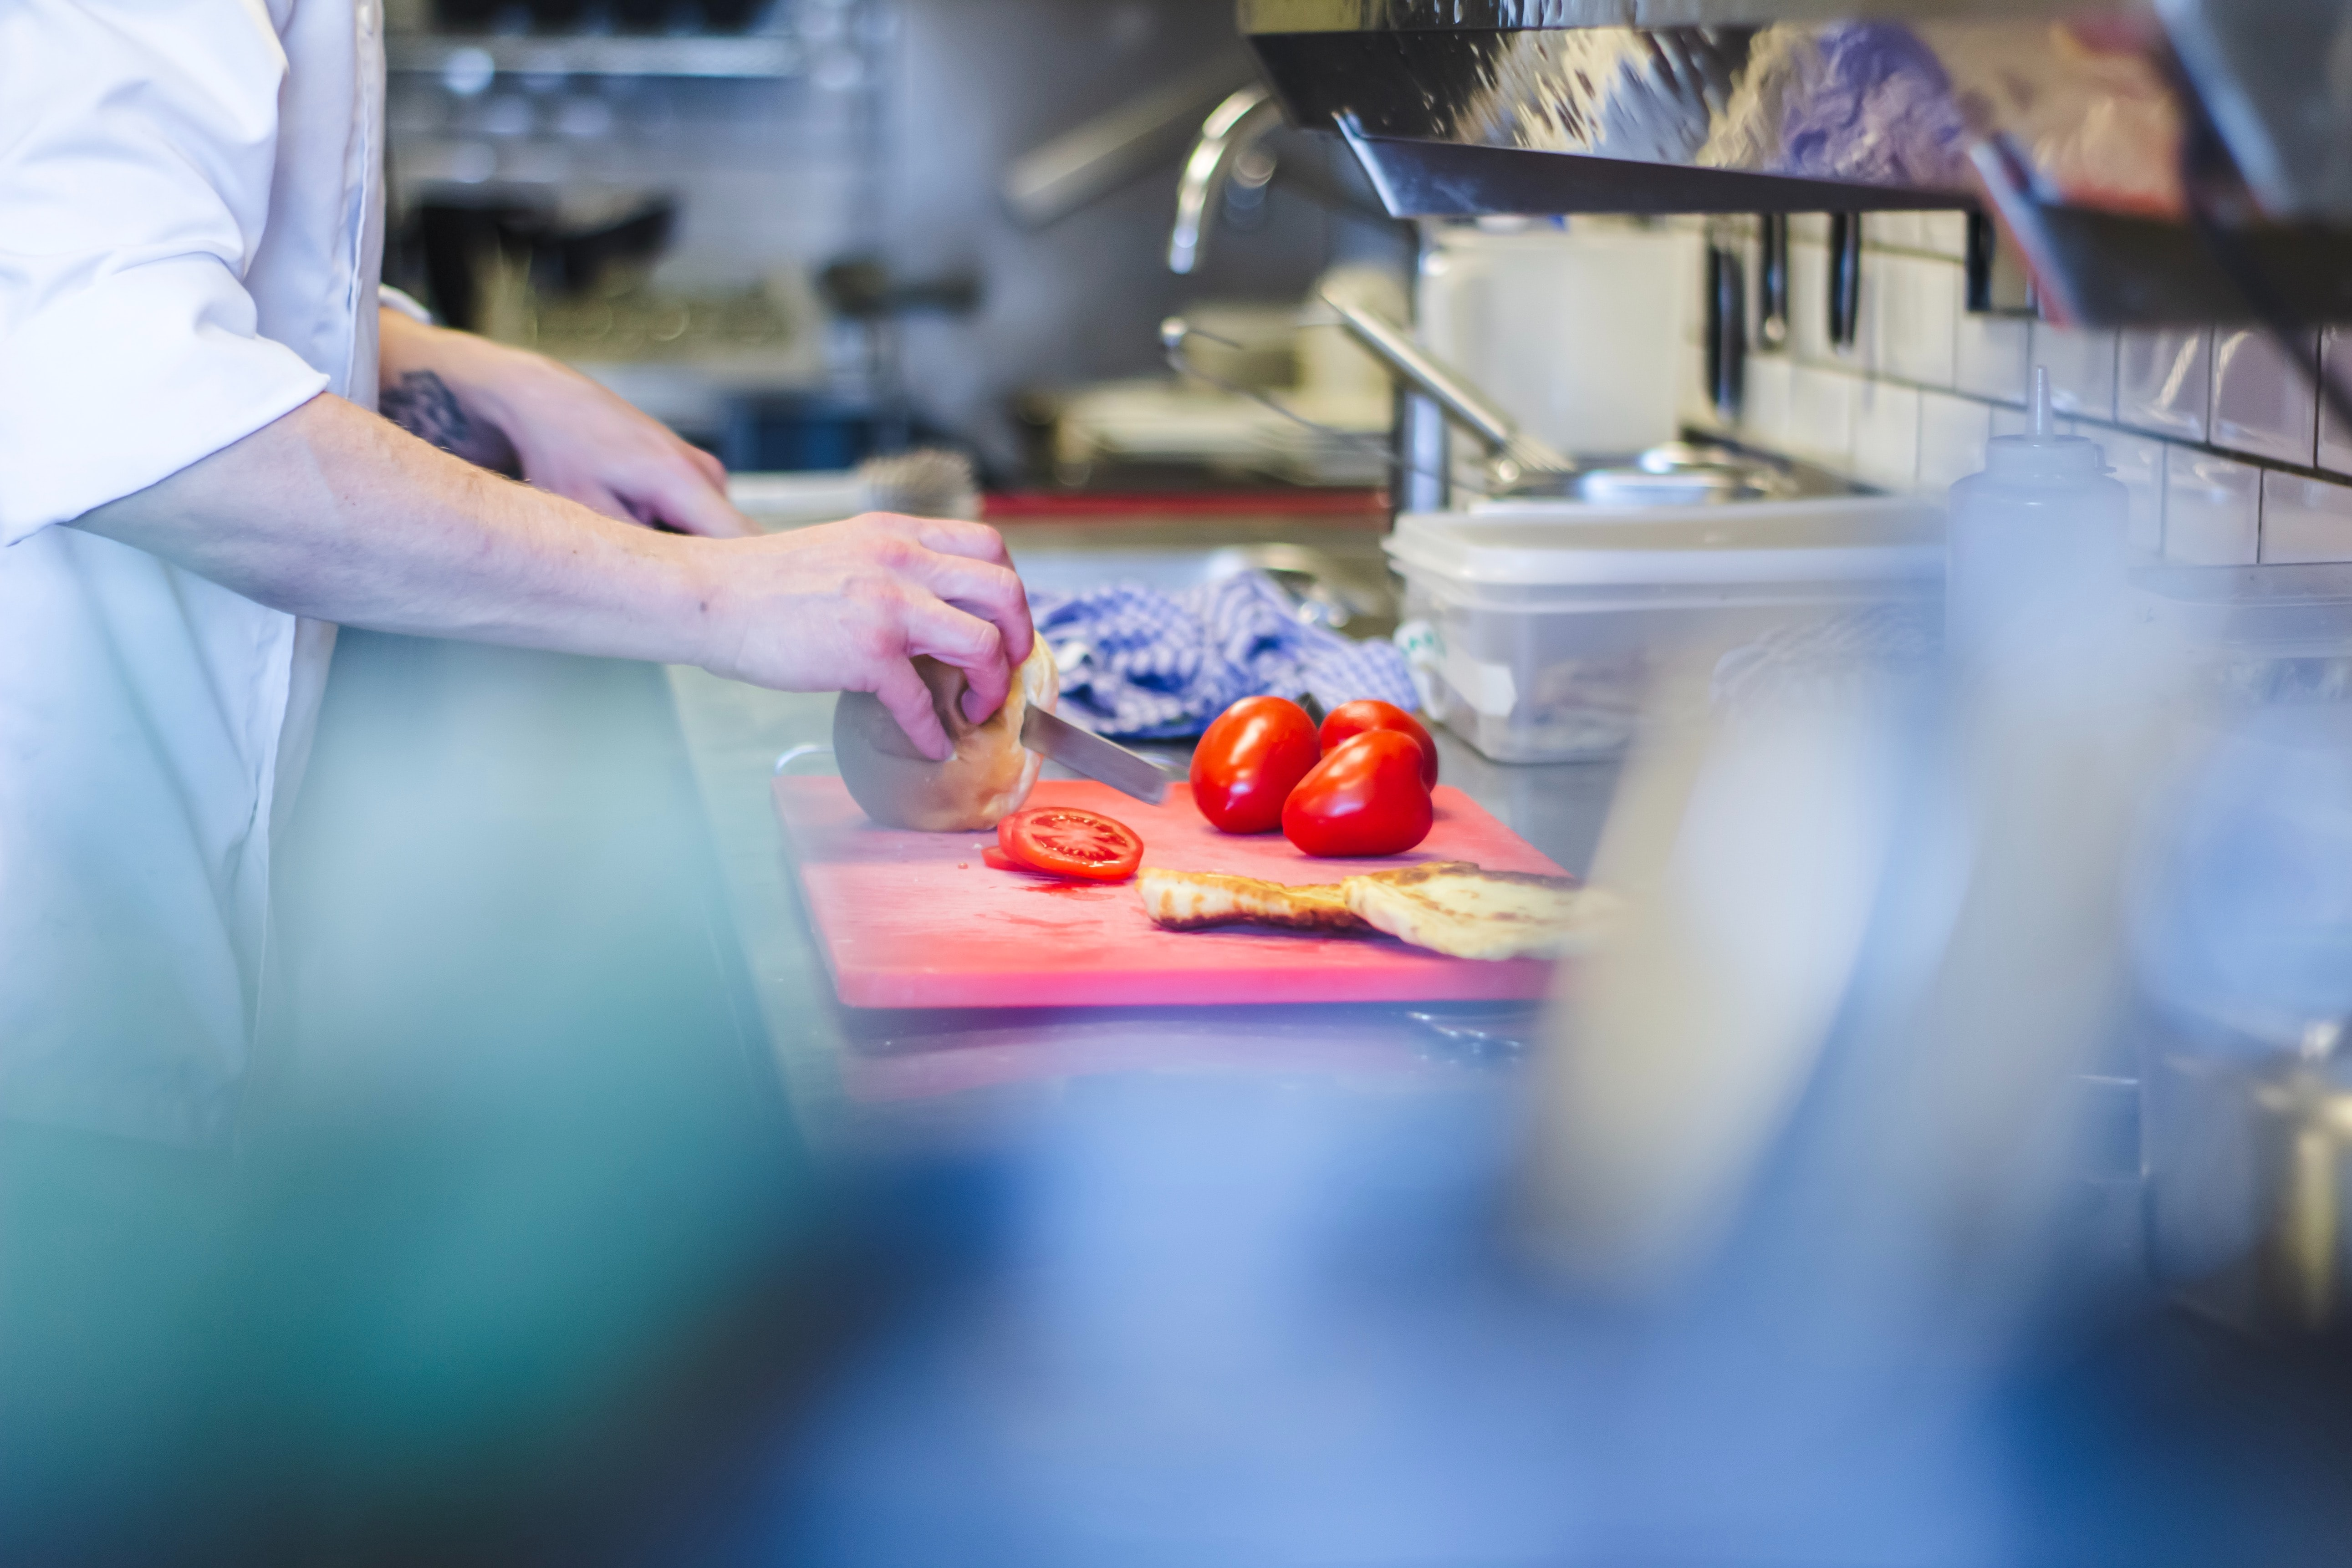 Safety Showers and Emergency Eye Washes in the Food Service Industry